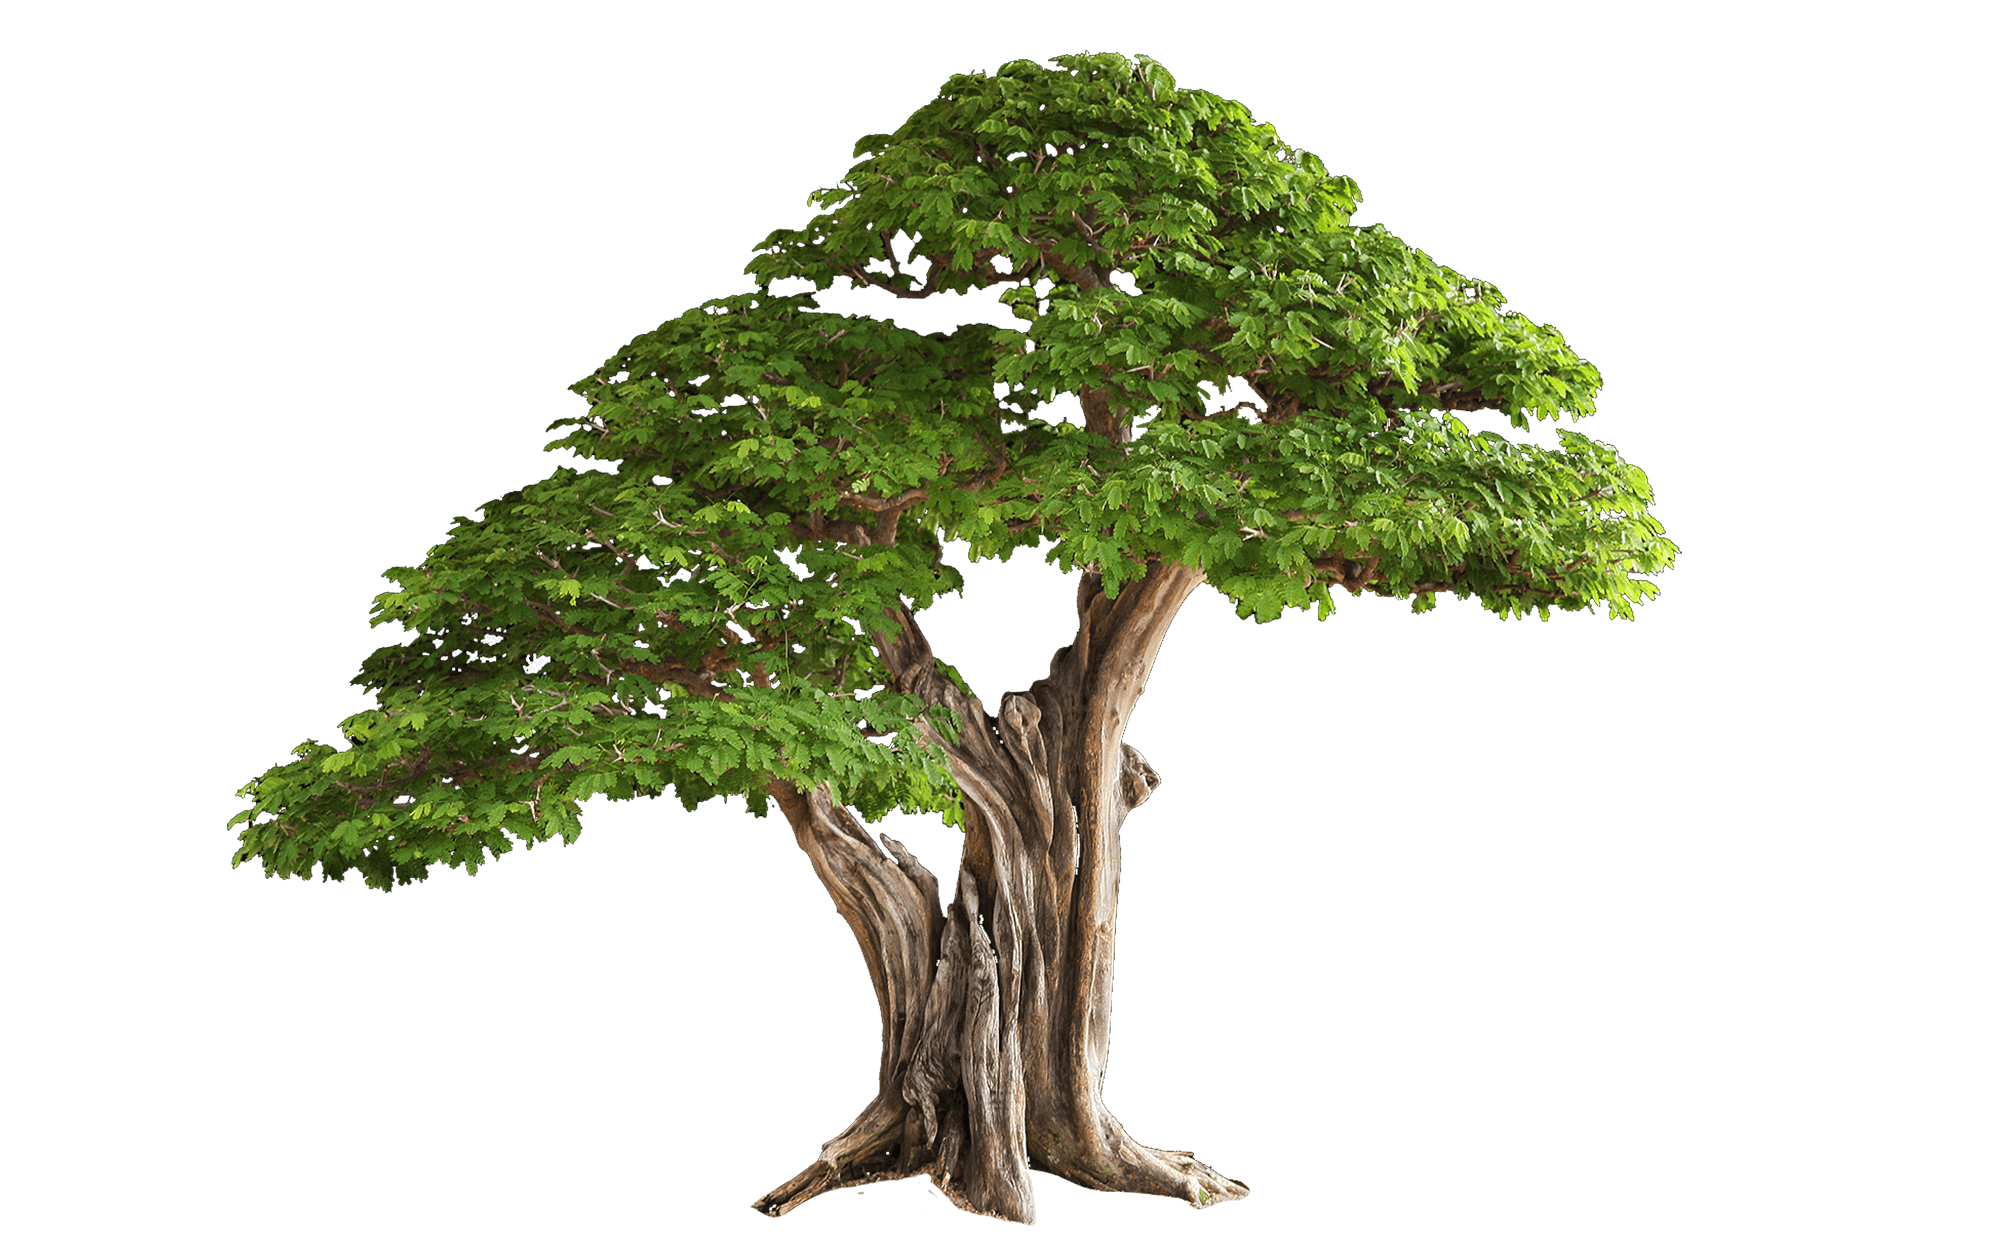 Tree PNG Transparent Images | PNG All